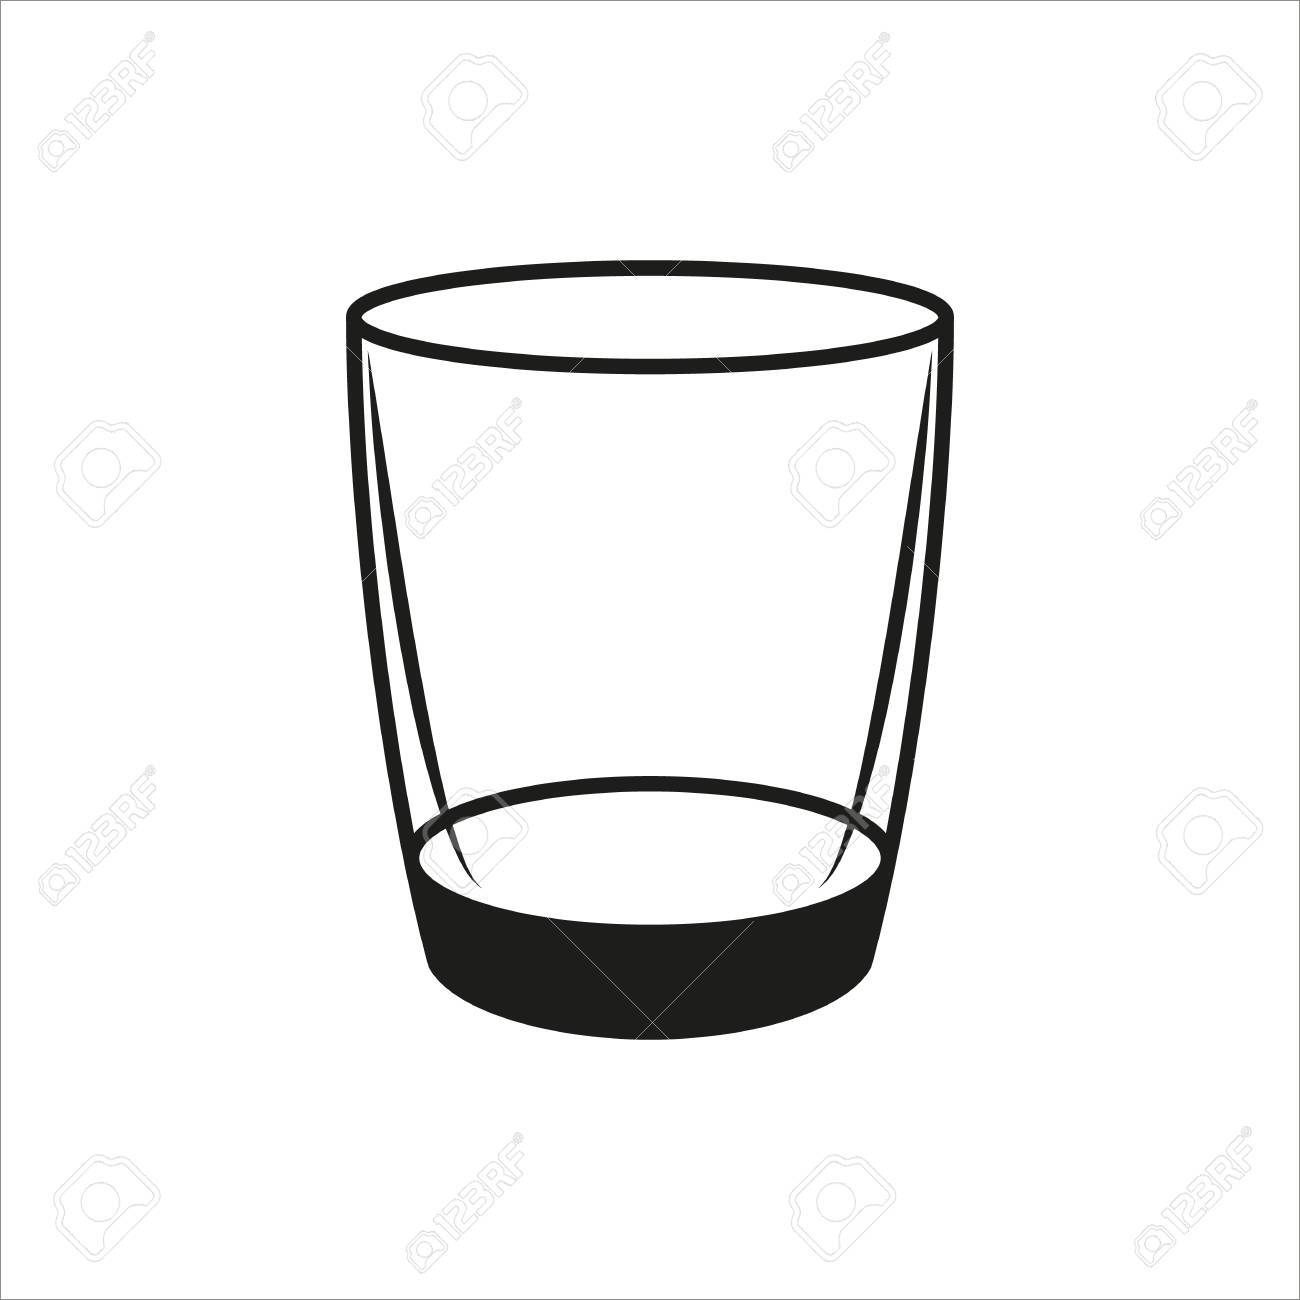 Empty glass in simple monochrome style icon on white background.